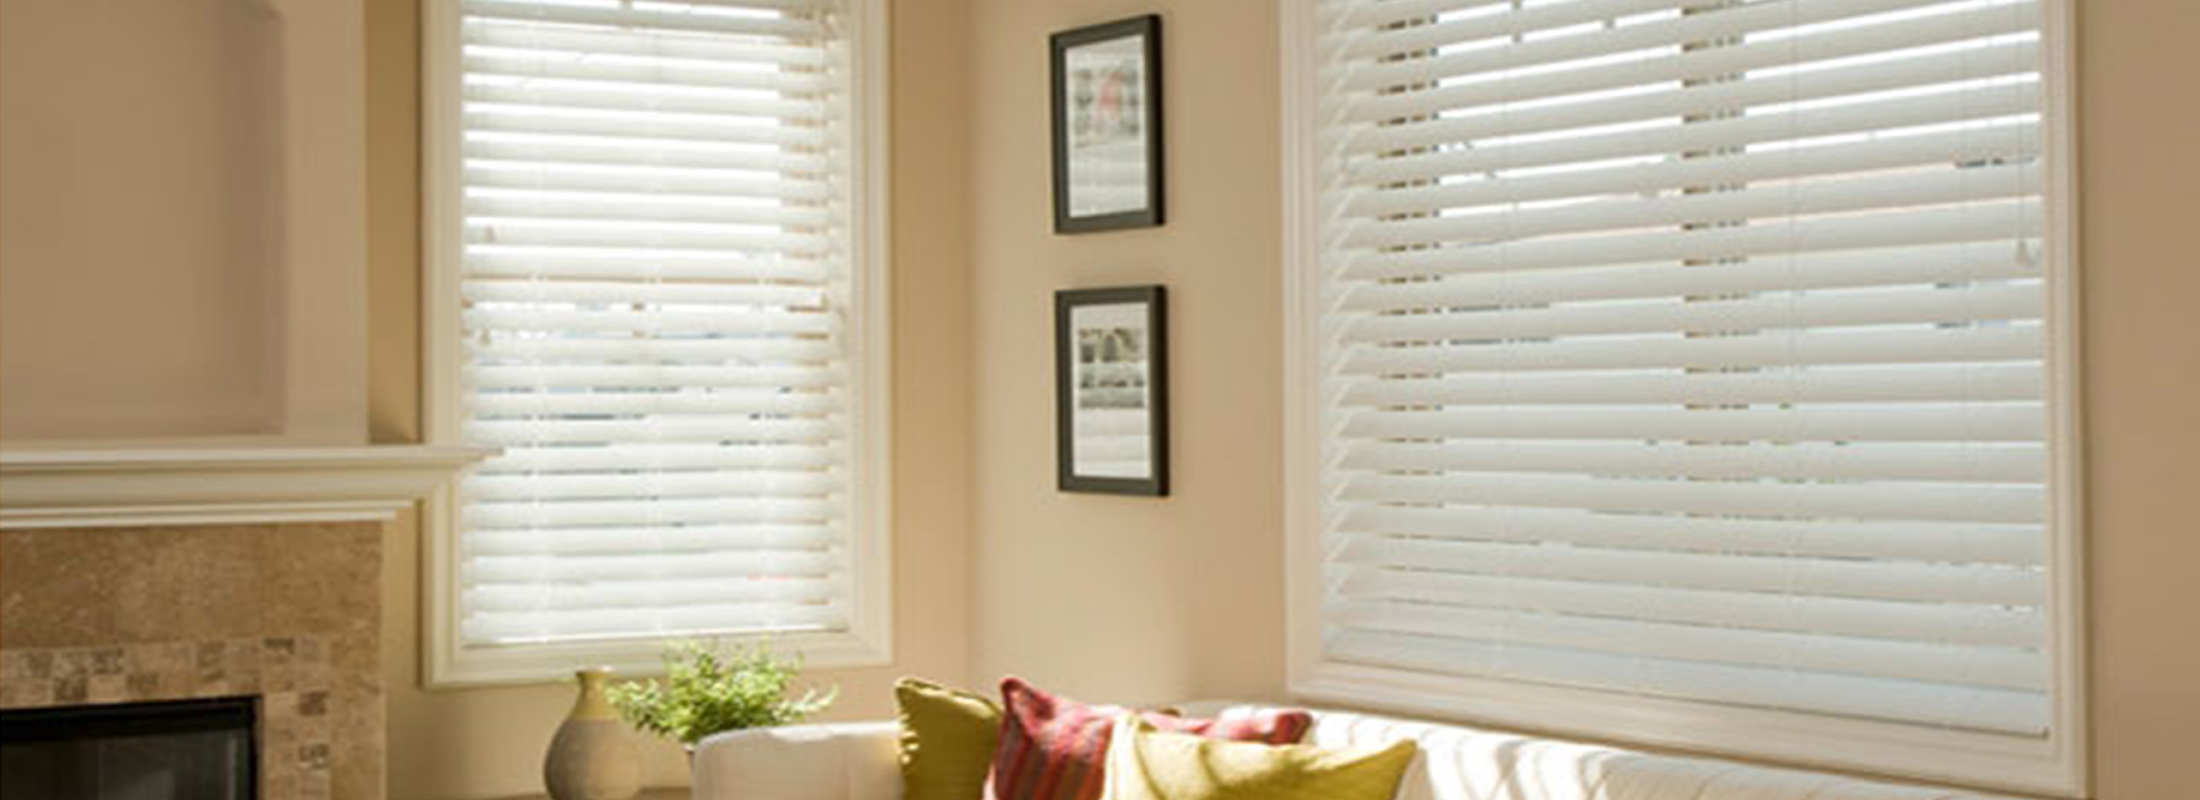 Get Performance Faux Wood Blinds by Norman at The Blinds Man